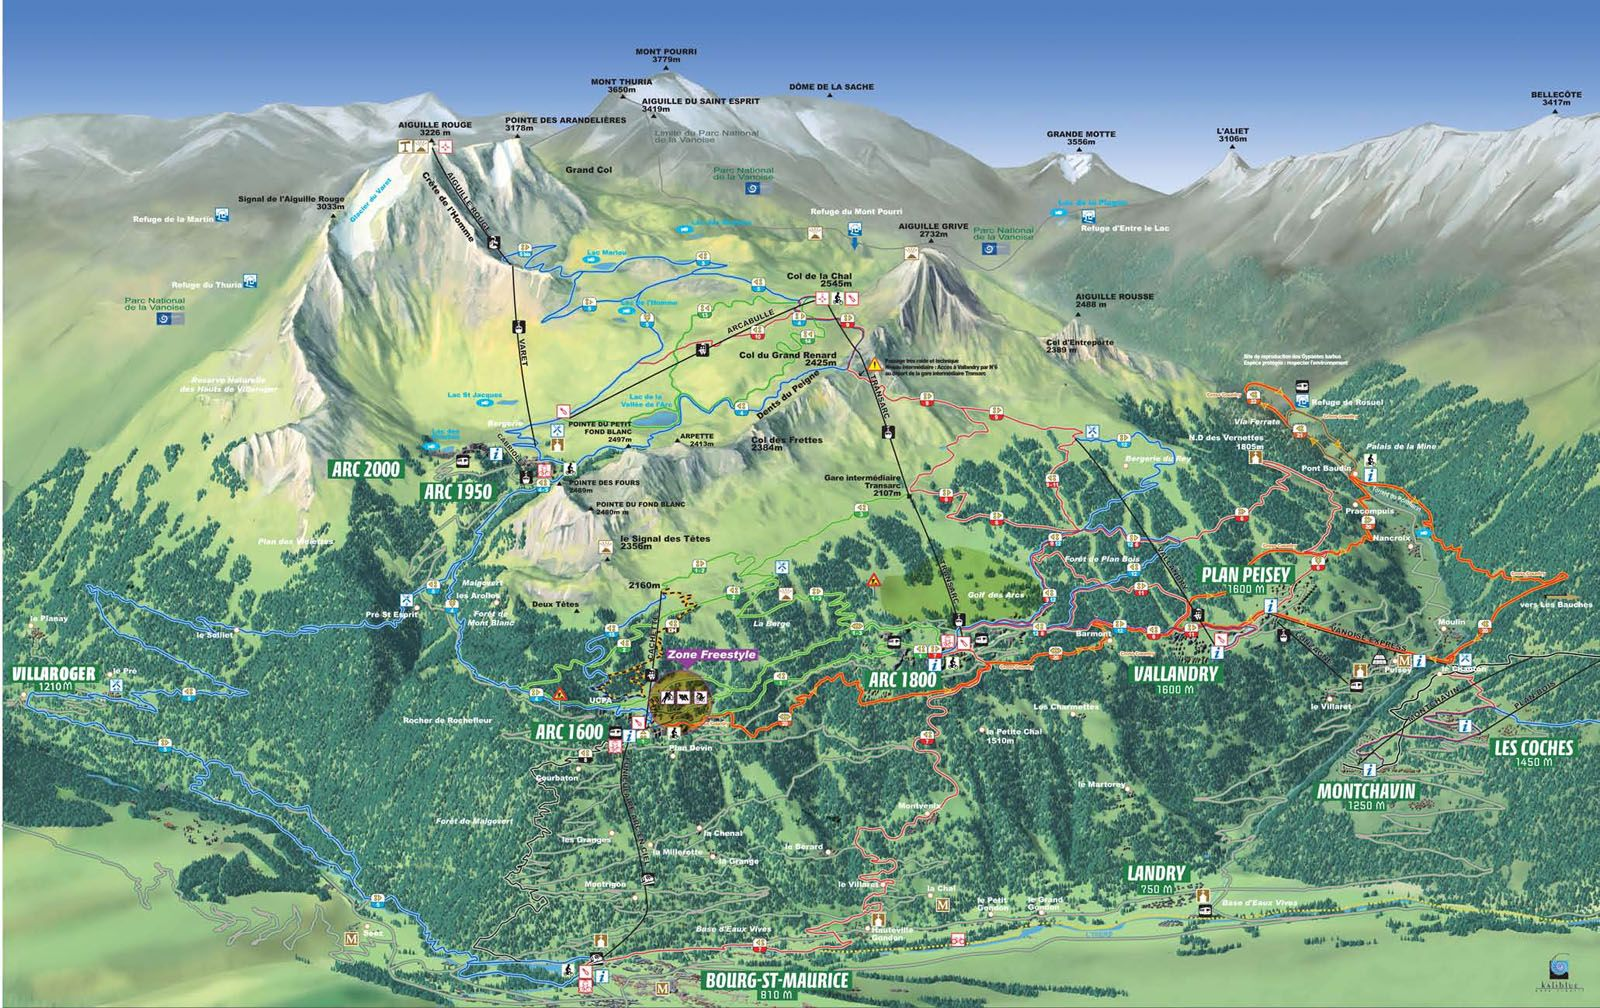 birds eye view map mountain Google Search maps Pinterest